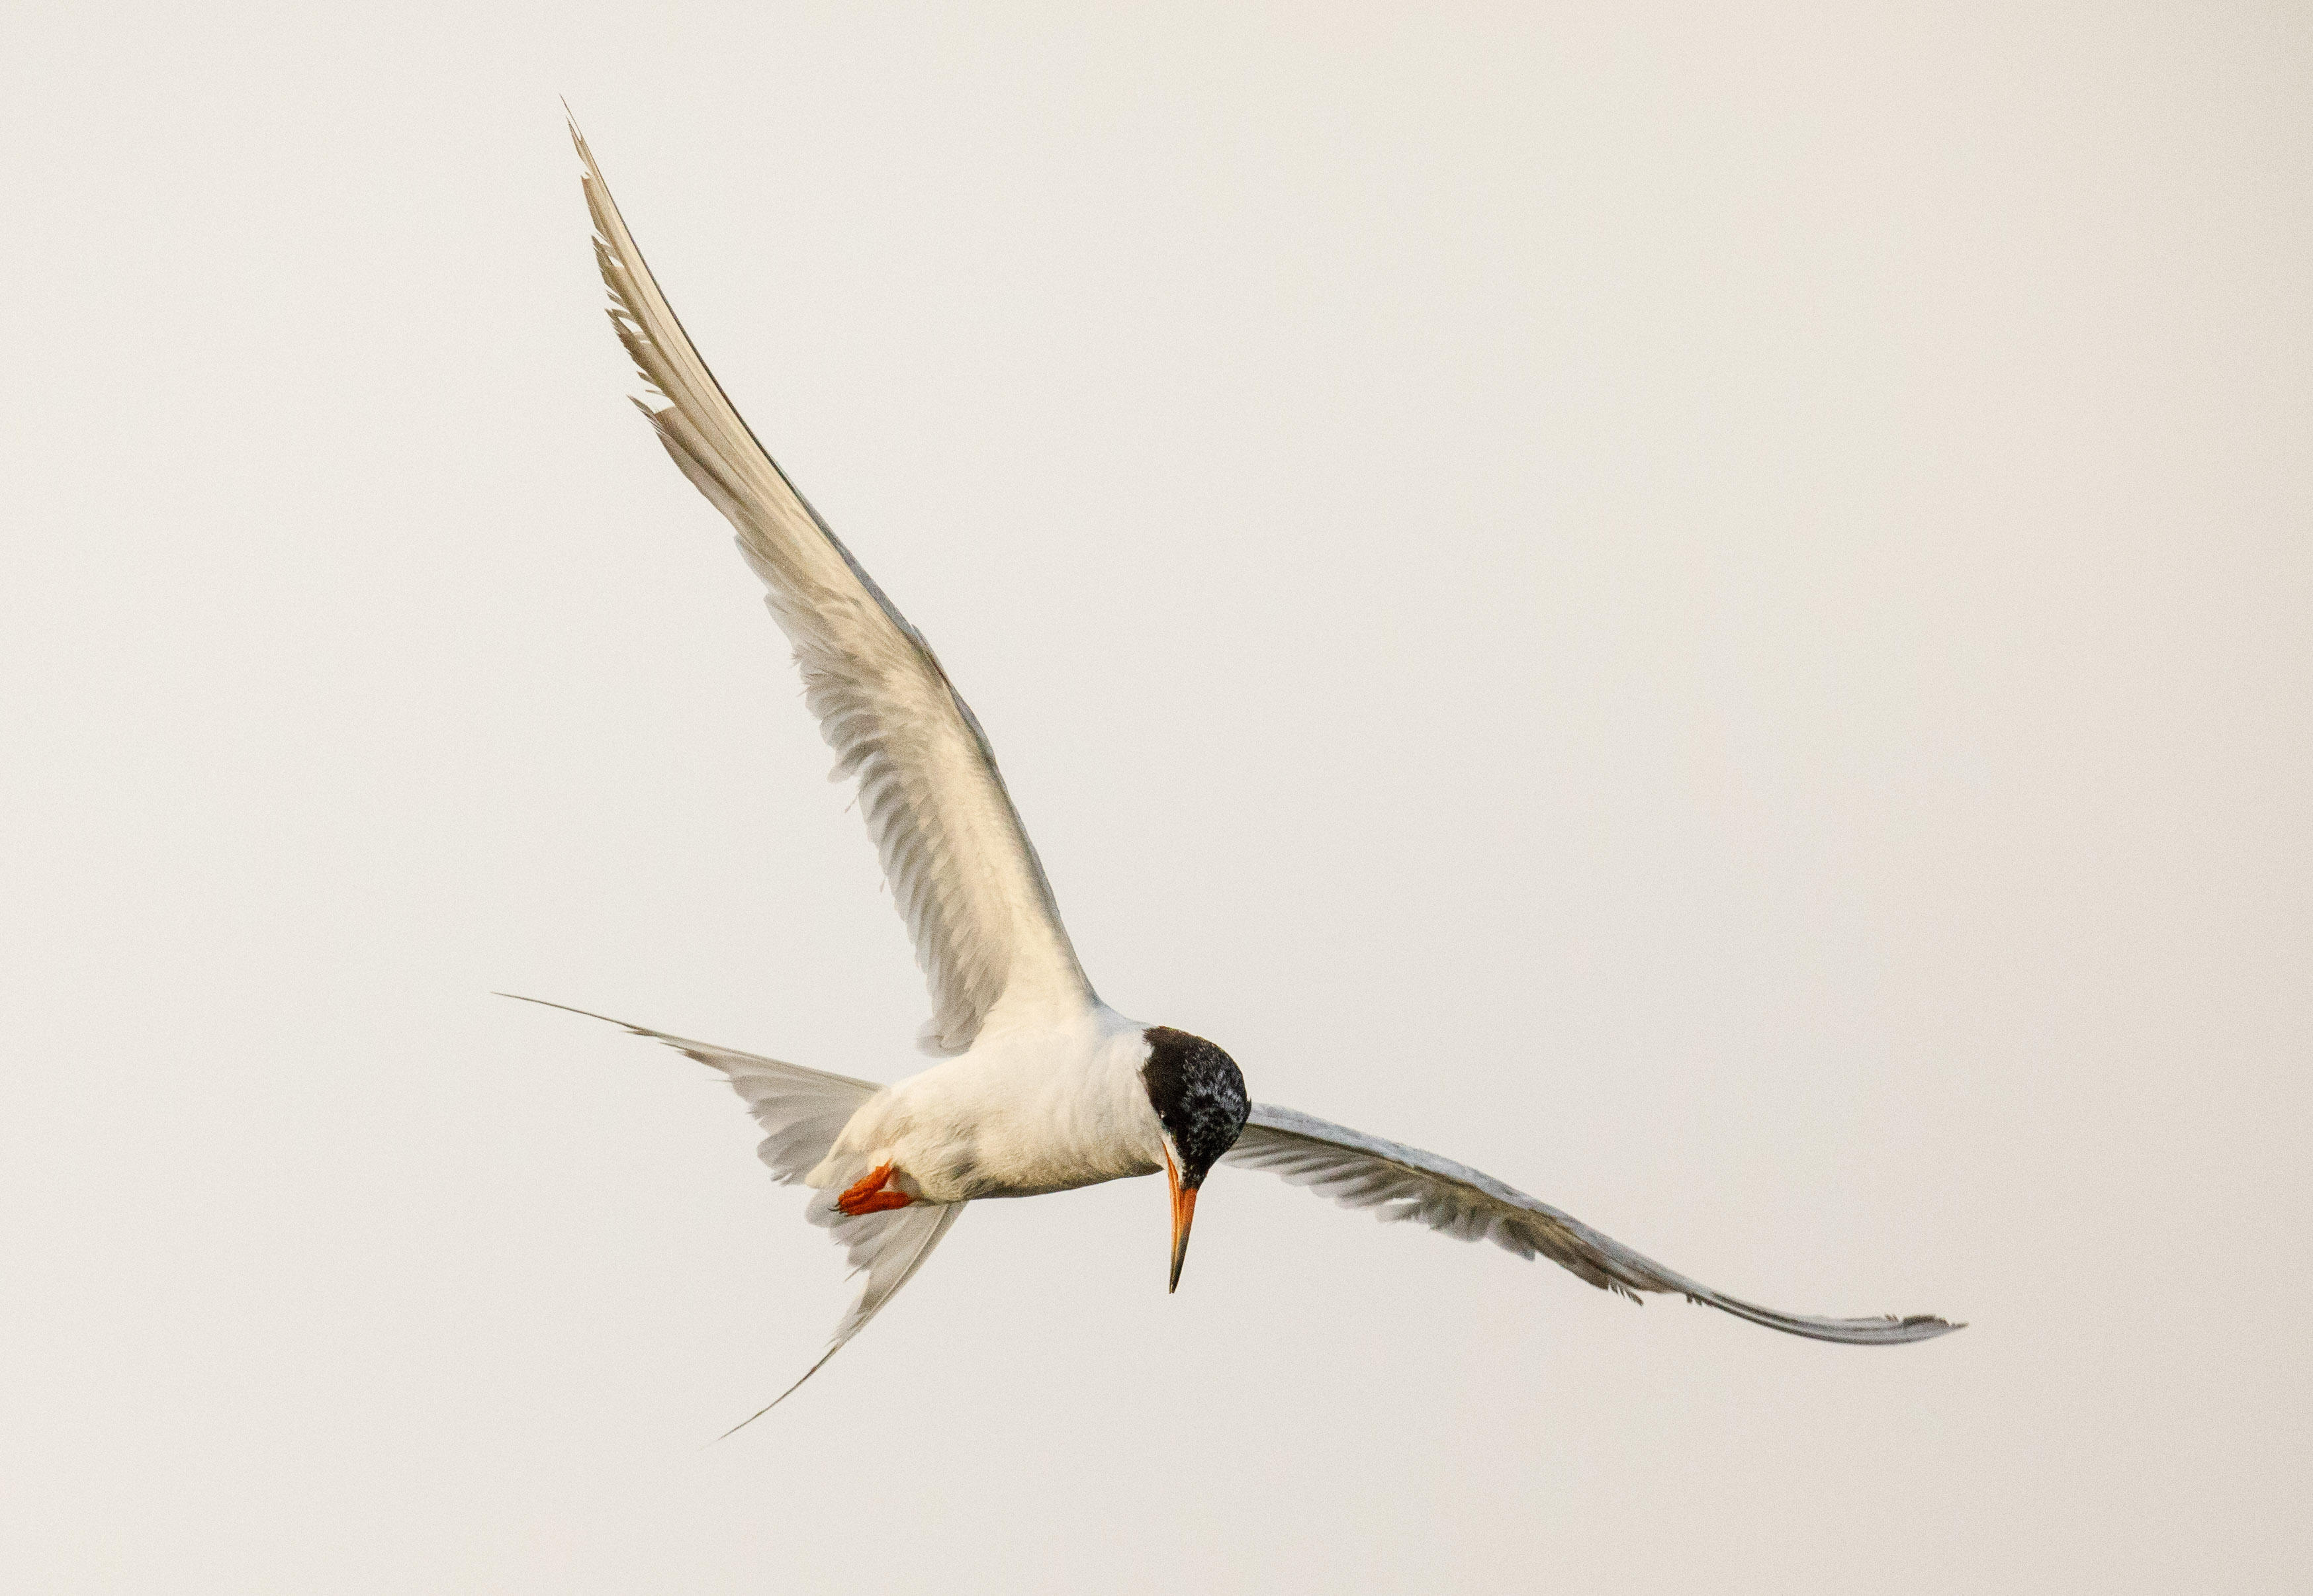 A Forster's tern looks for fish to snatch from the San Francisco Bay in Palo Alto, California.